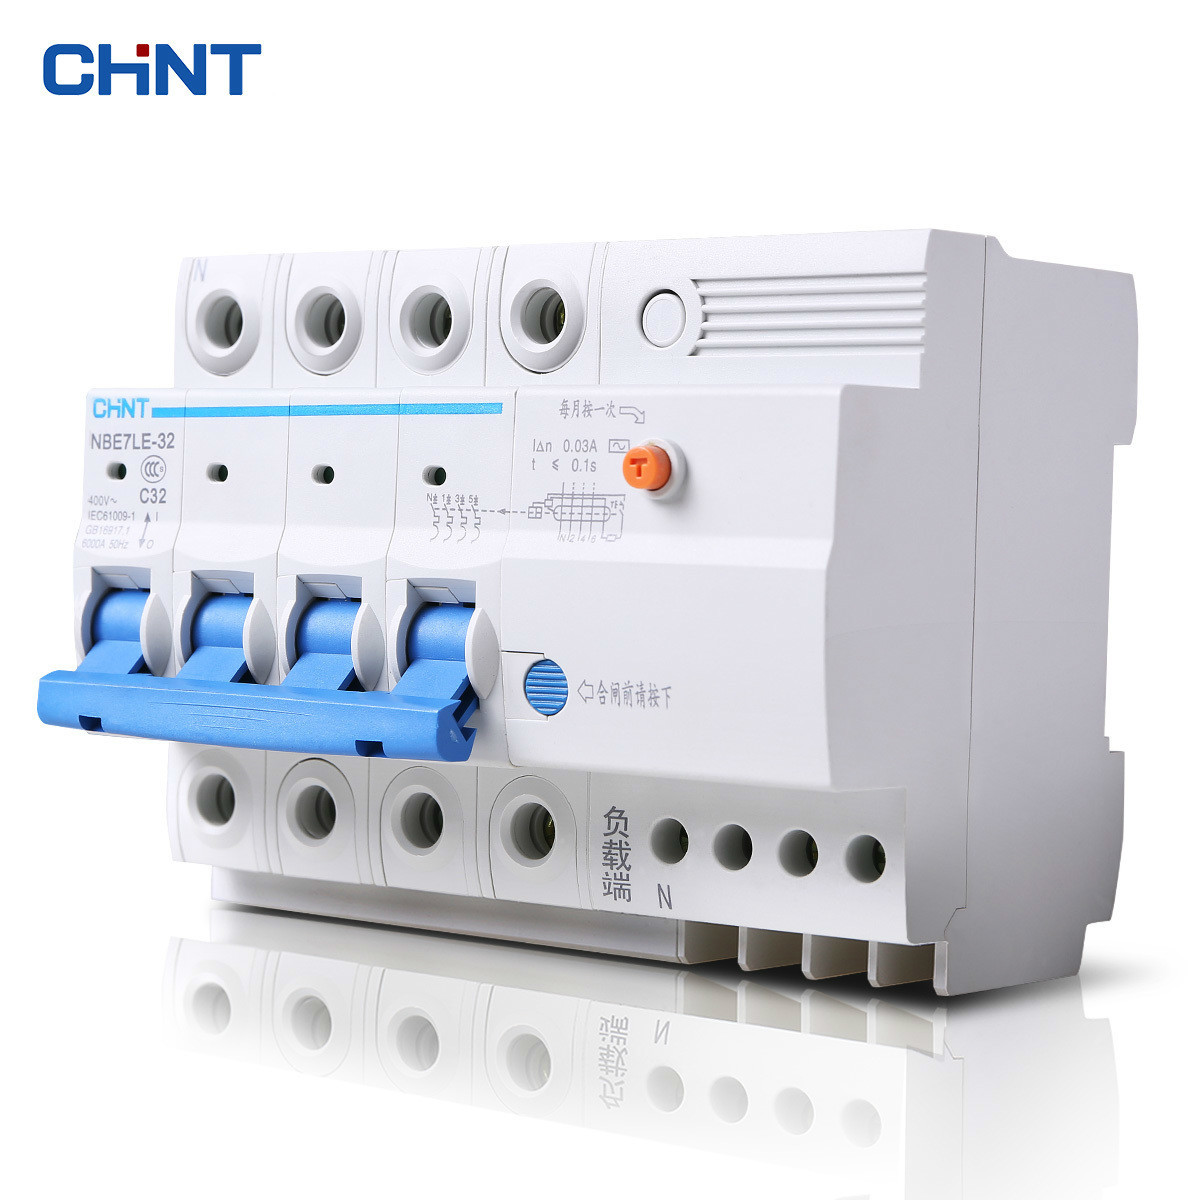 цена на CHNT CHINT Leakage Protection Leakage Circuit Breaker NBE7LE 4P 16A 20A 25A 32A 40A 63A With Leakage Protector Air Switch